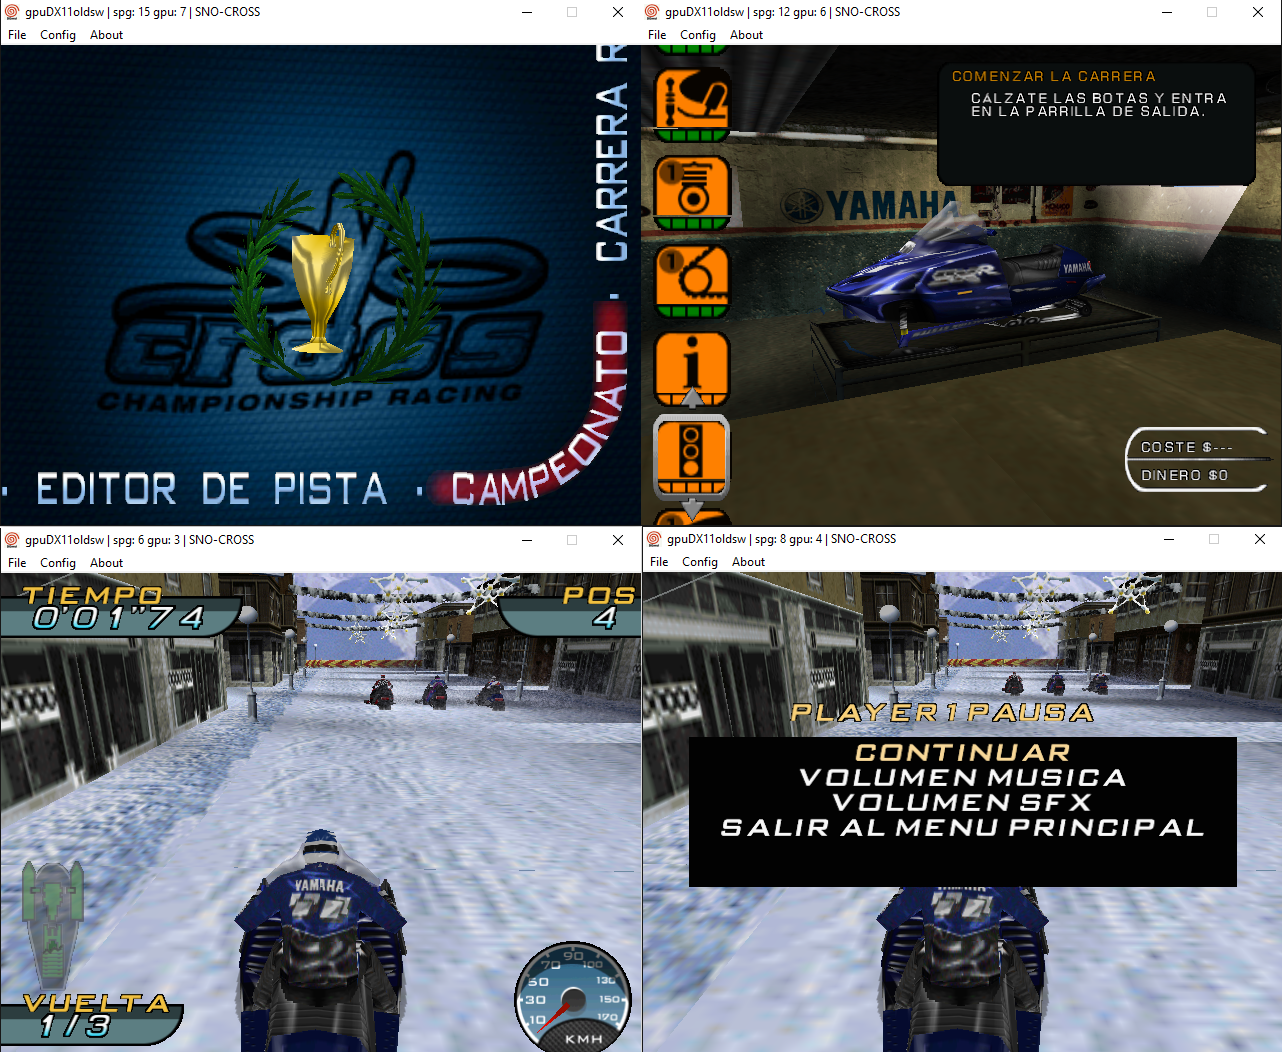 image.ibb.co/dSDH5G/snocross.png